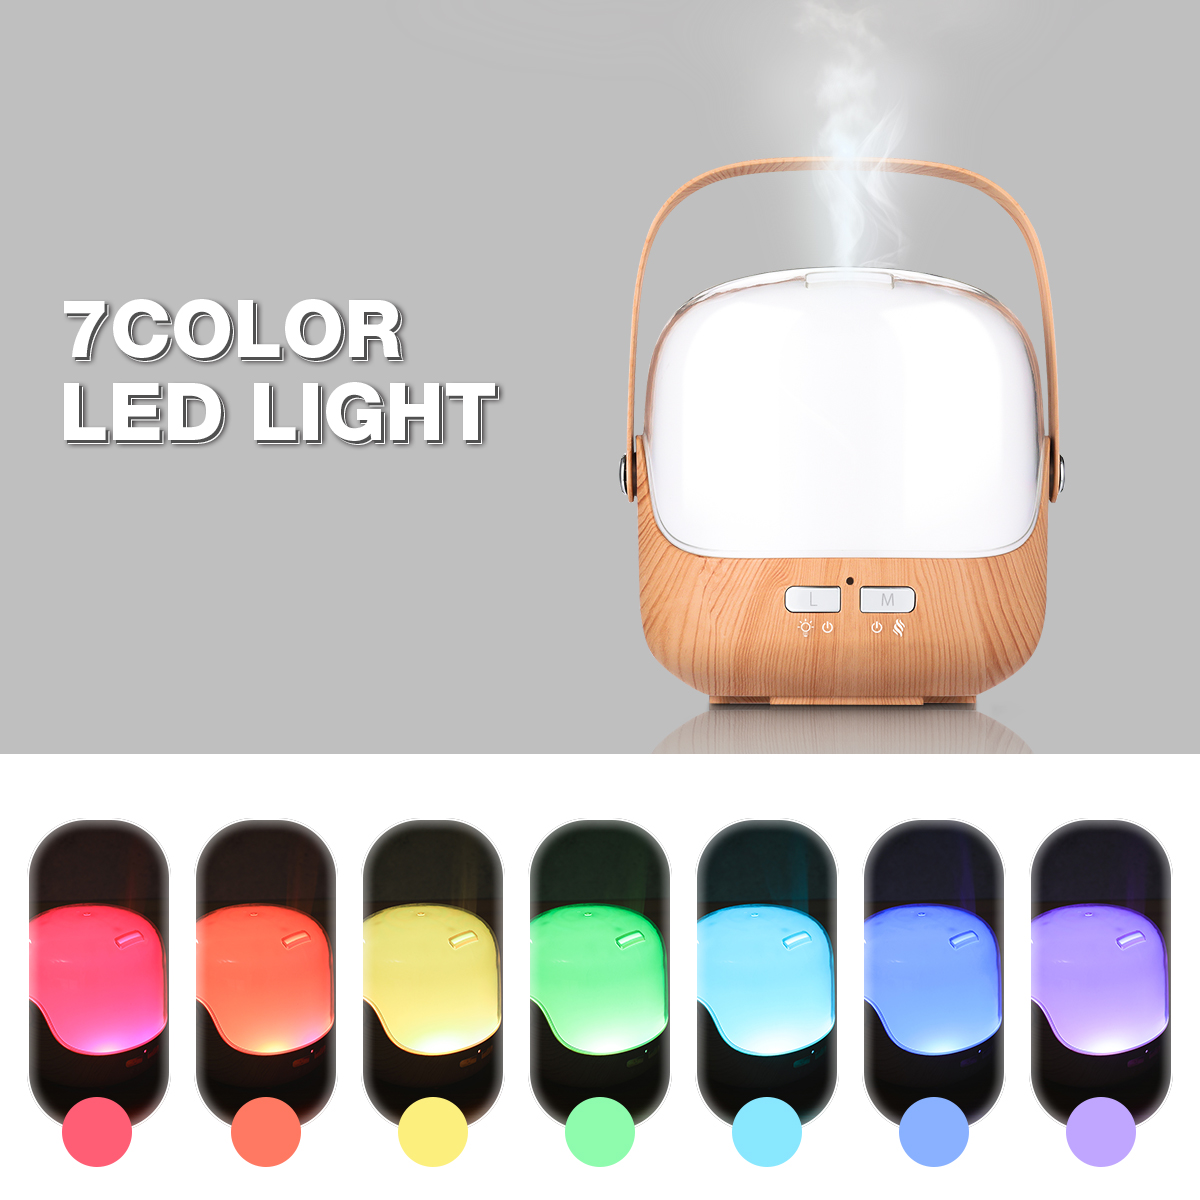 LED Aromatherapy Essential Oil Diffuser Wood Grain